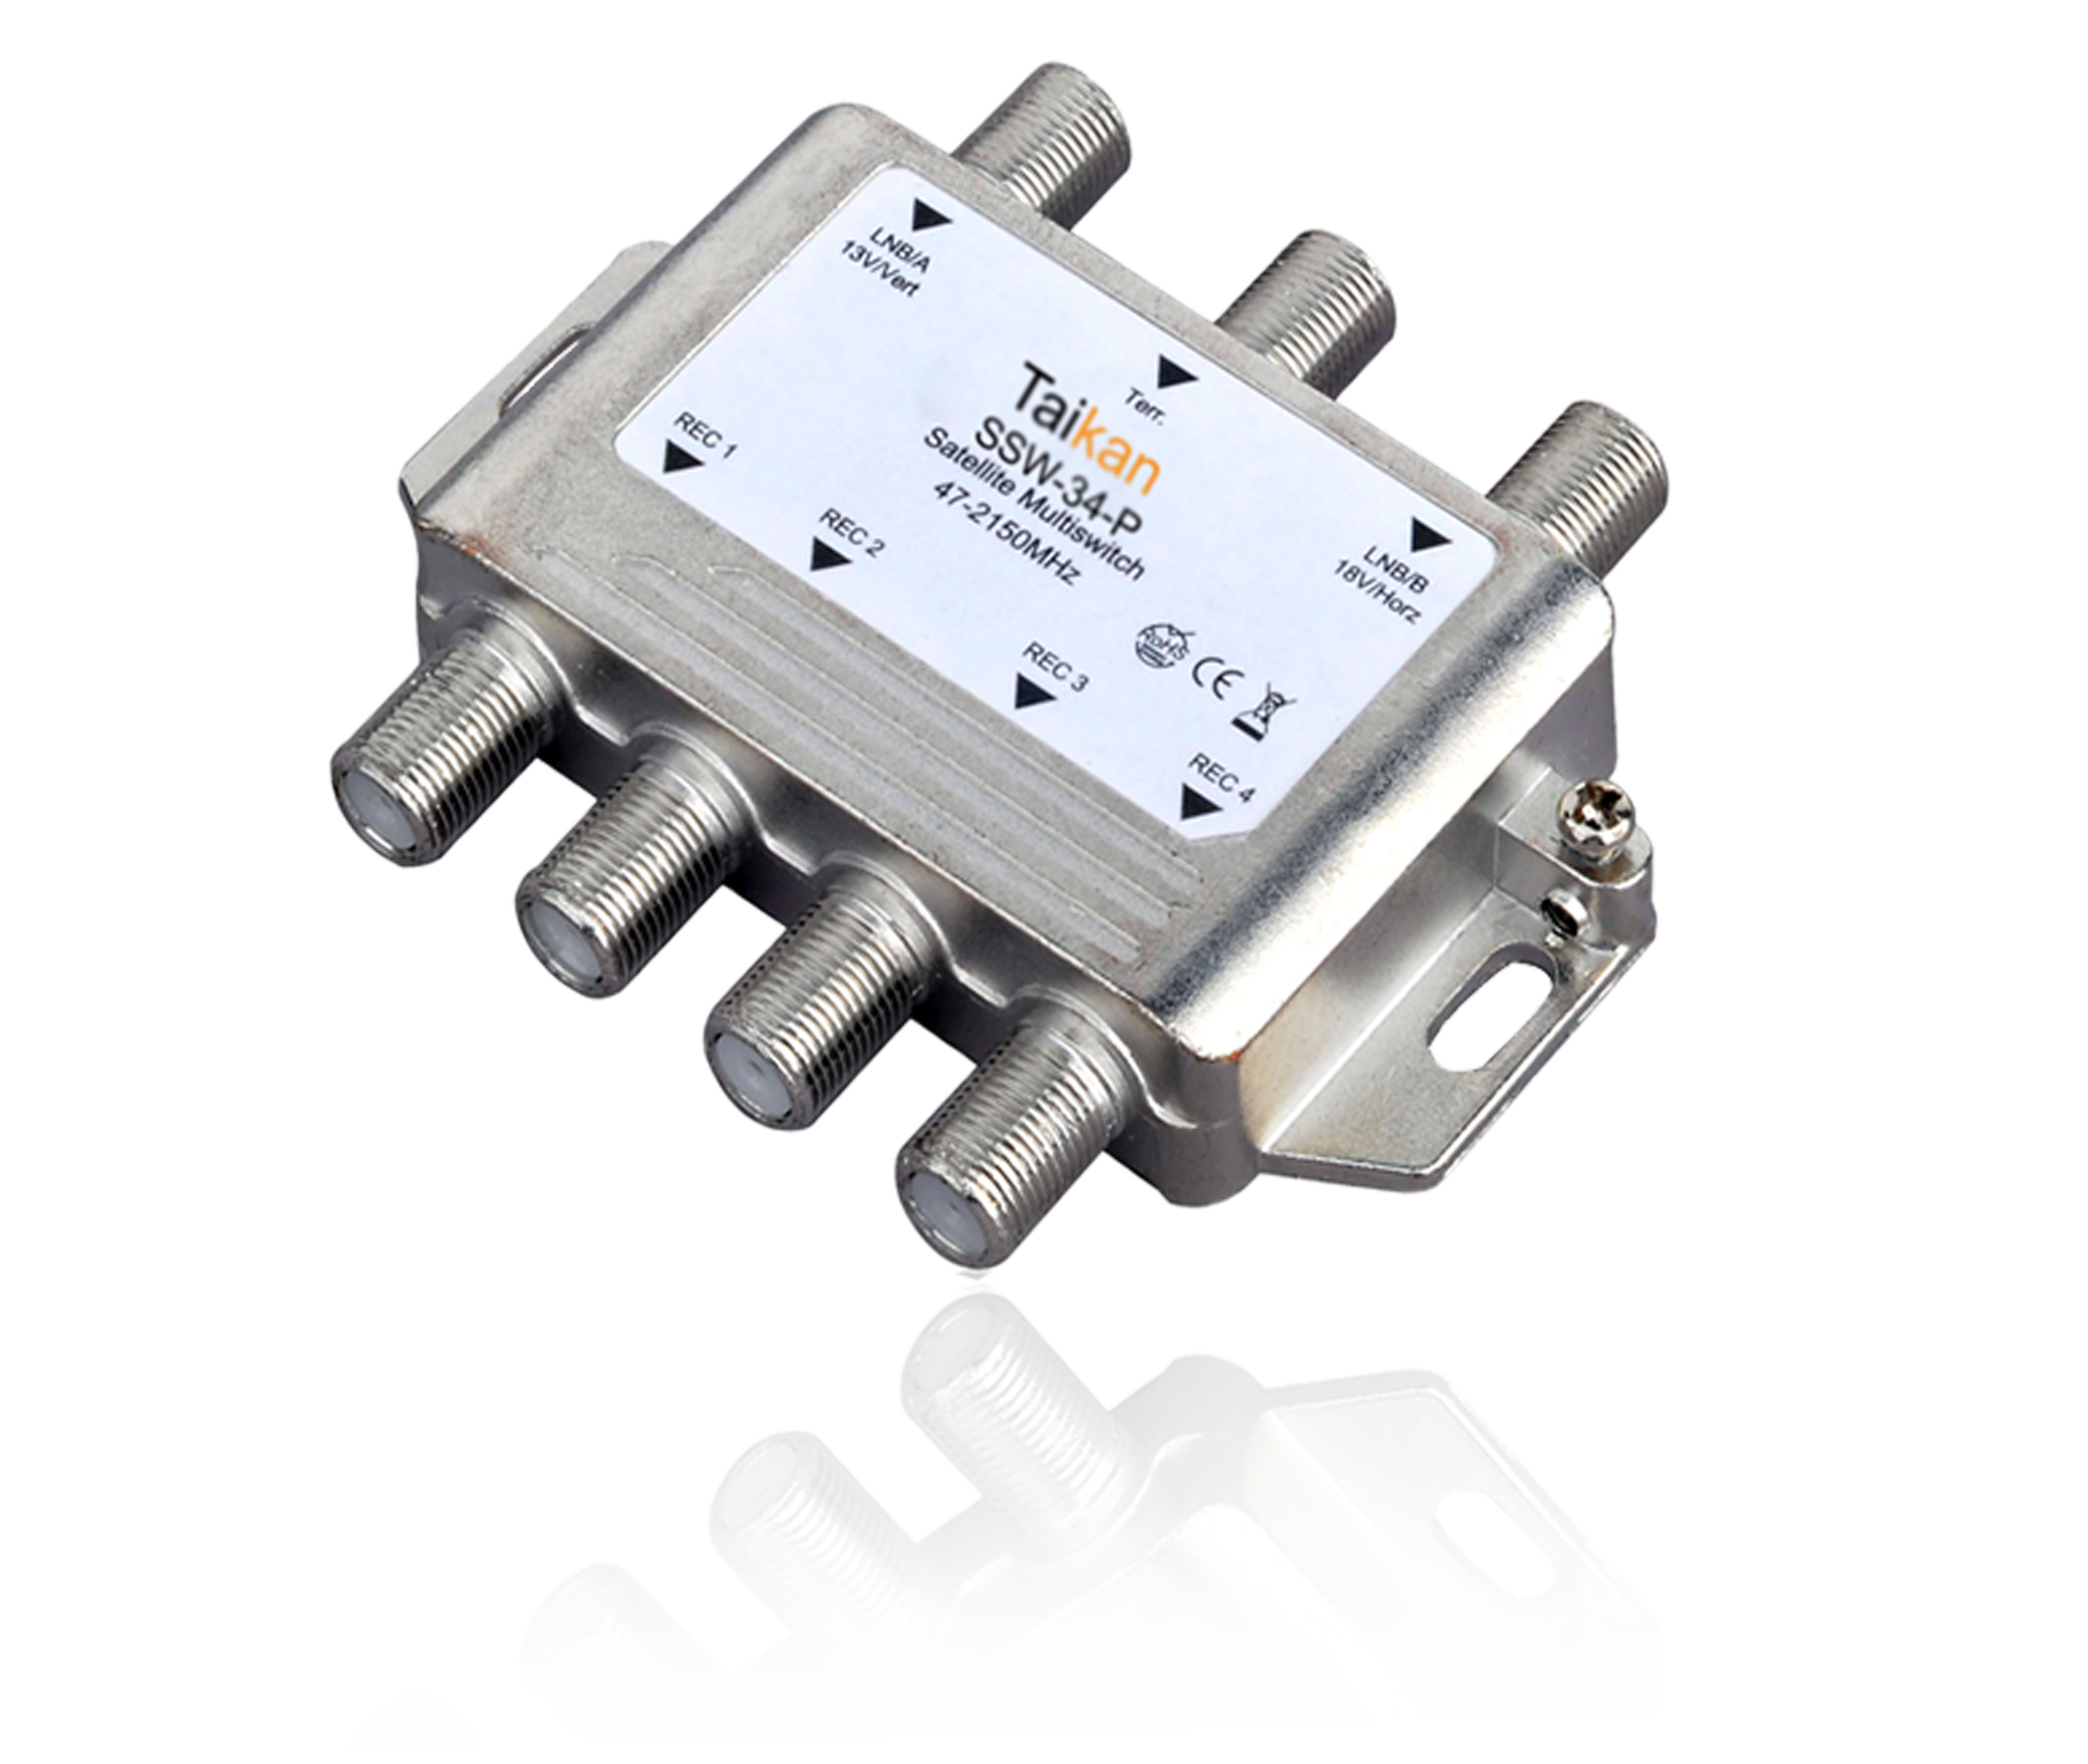 taikan optical switch for satellite network equipment and hardware for infrastructure